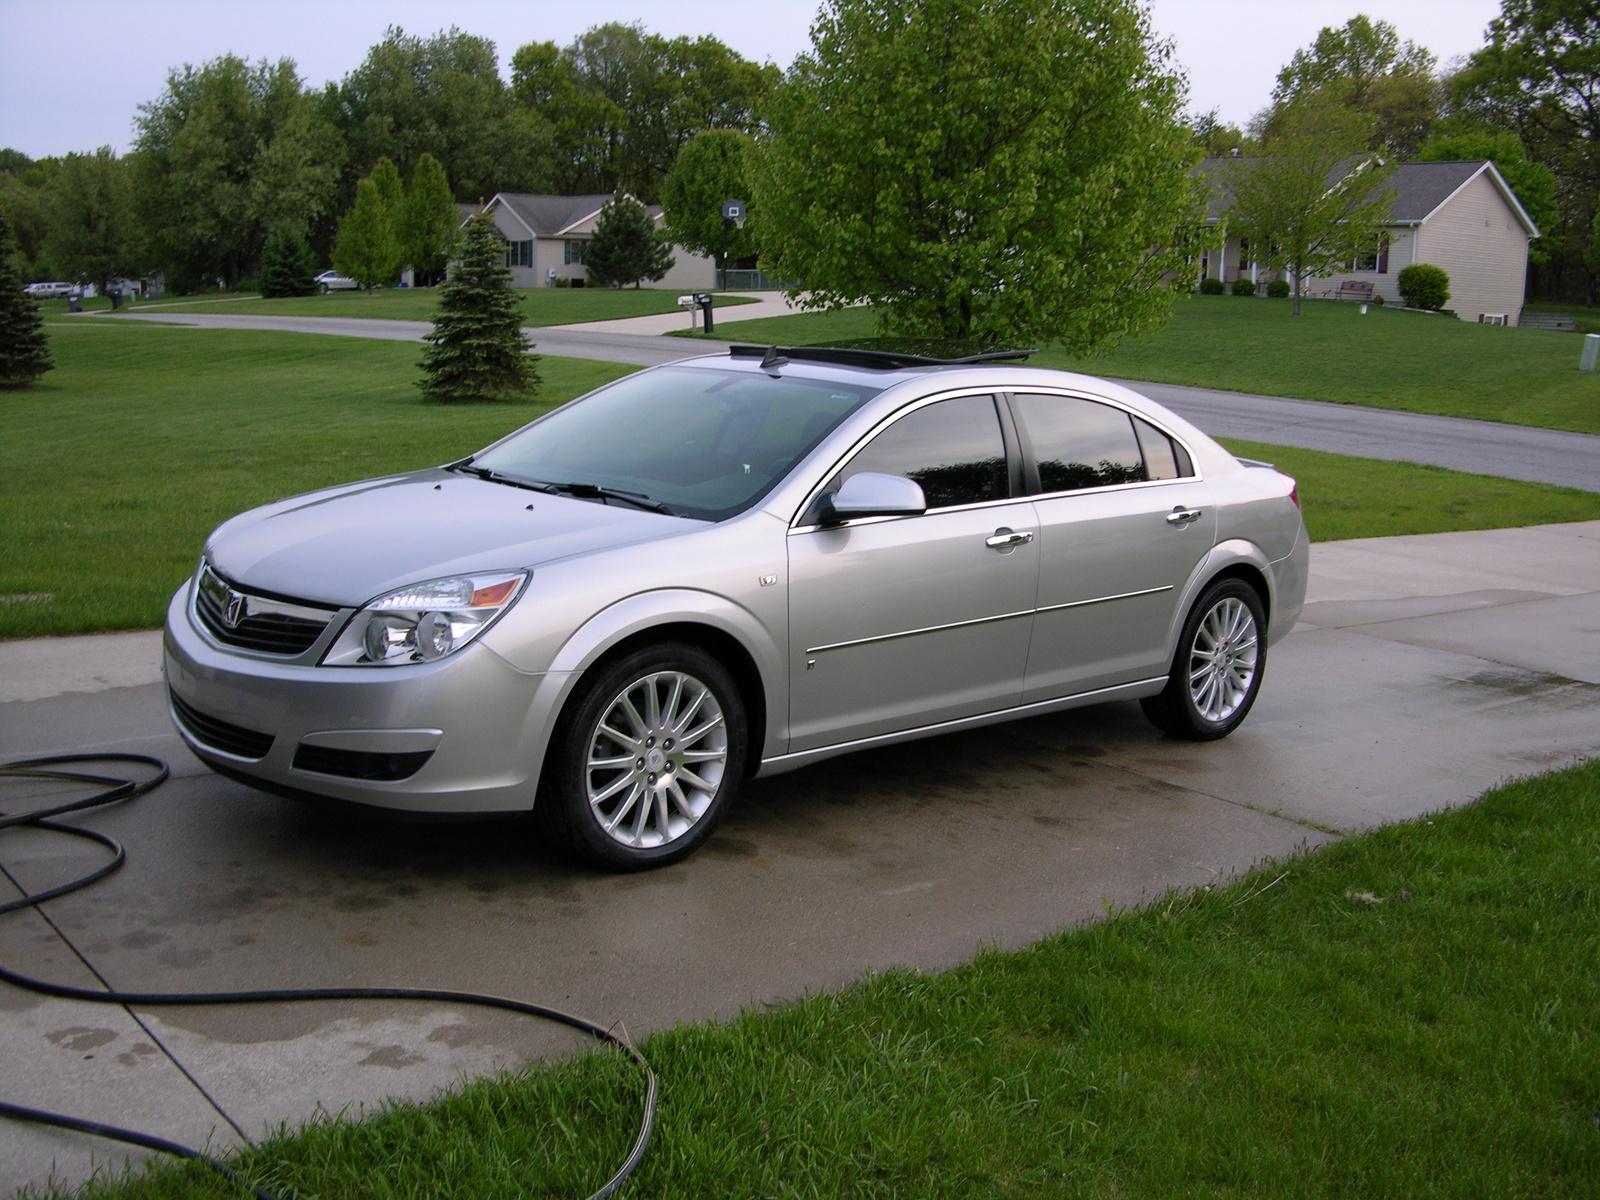 2016 Saturn Aura Xr  U2013 Pictures  Information And Specs